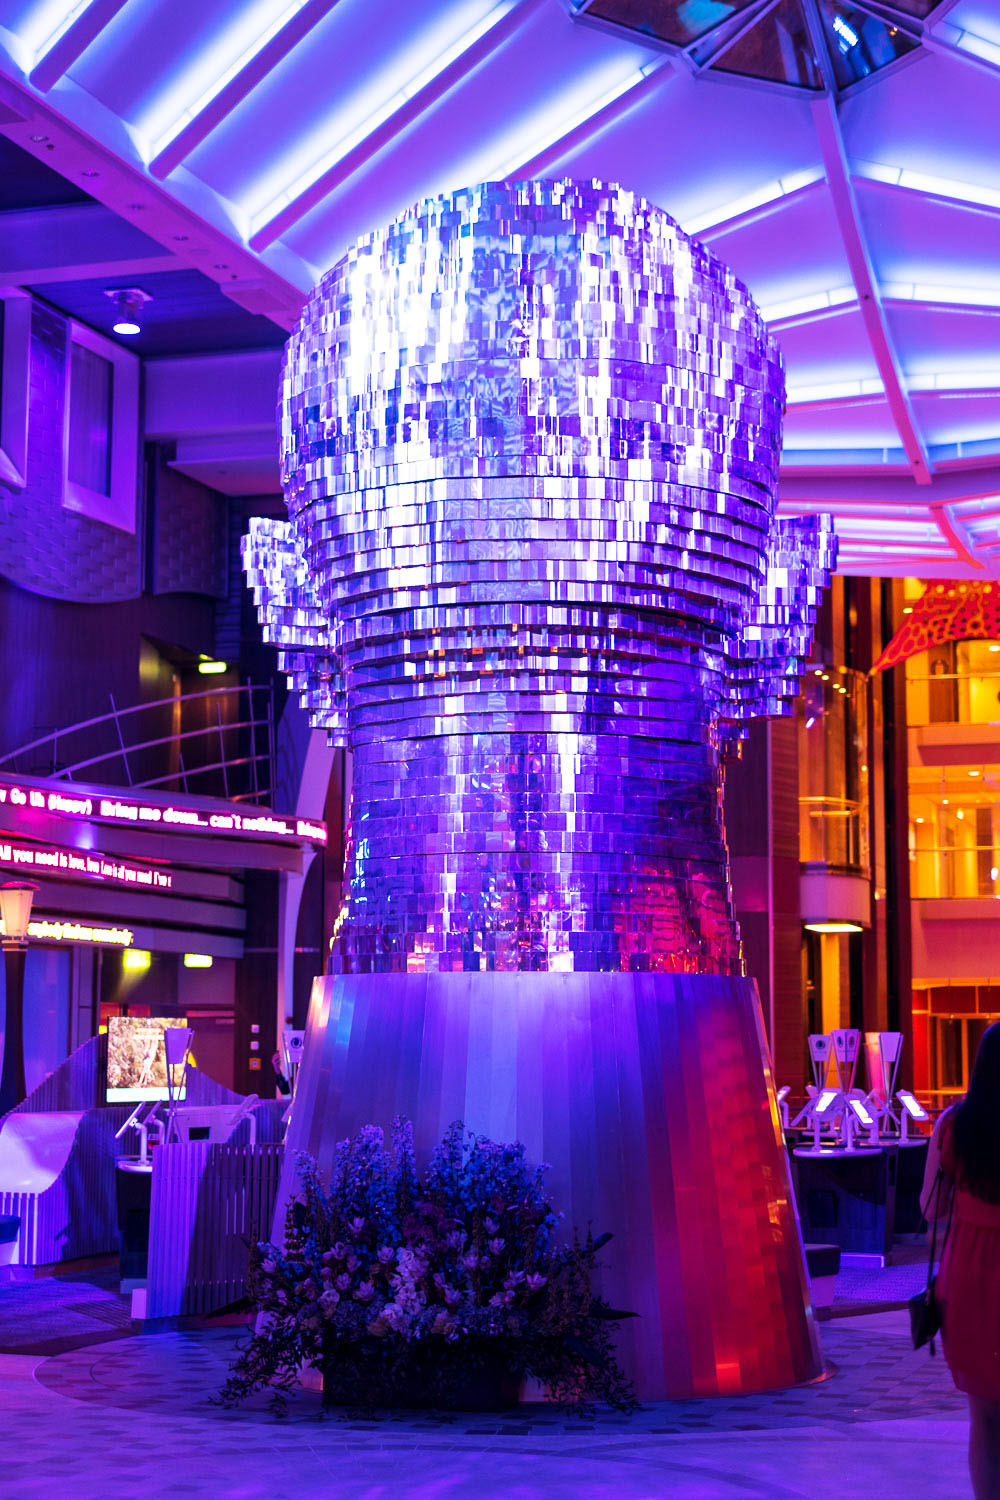 Top 10 Things To Do On The Harmony Of The Seas Cruise Ship